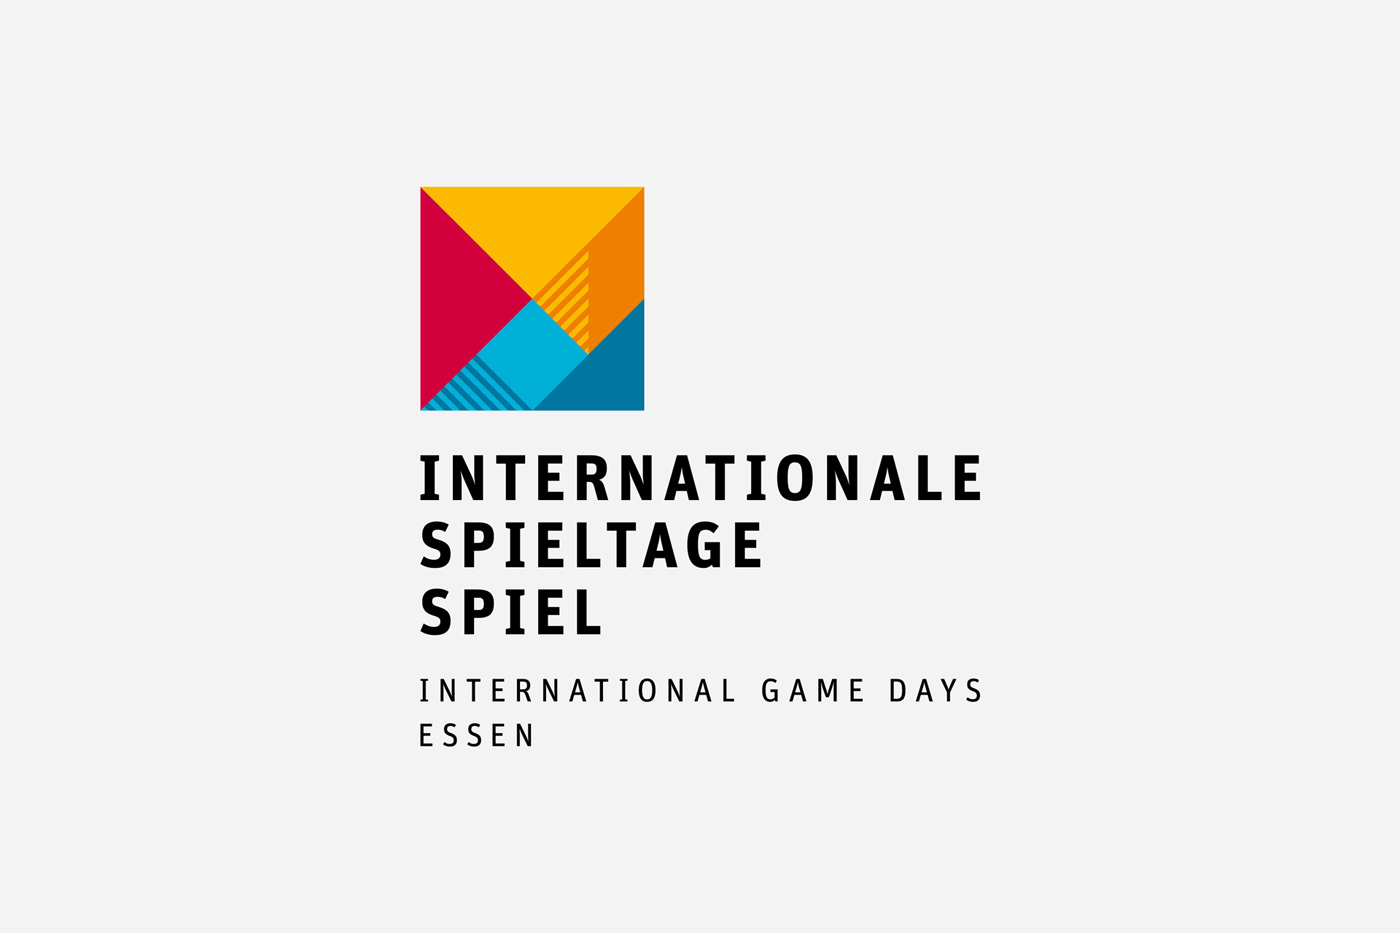 Internationale Spieltage Spiel / Stefan Zimmermann